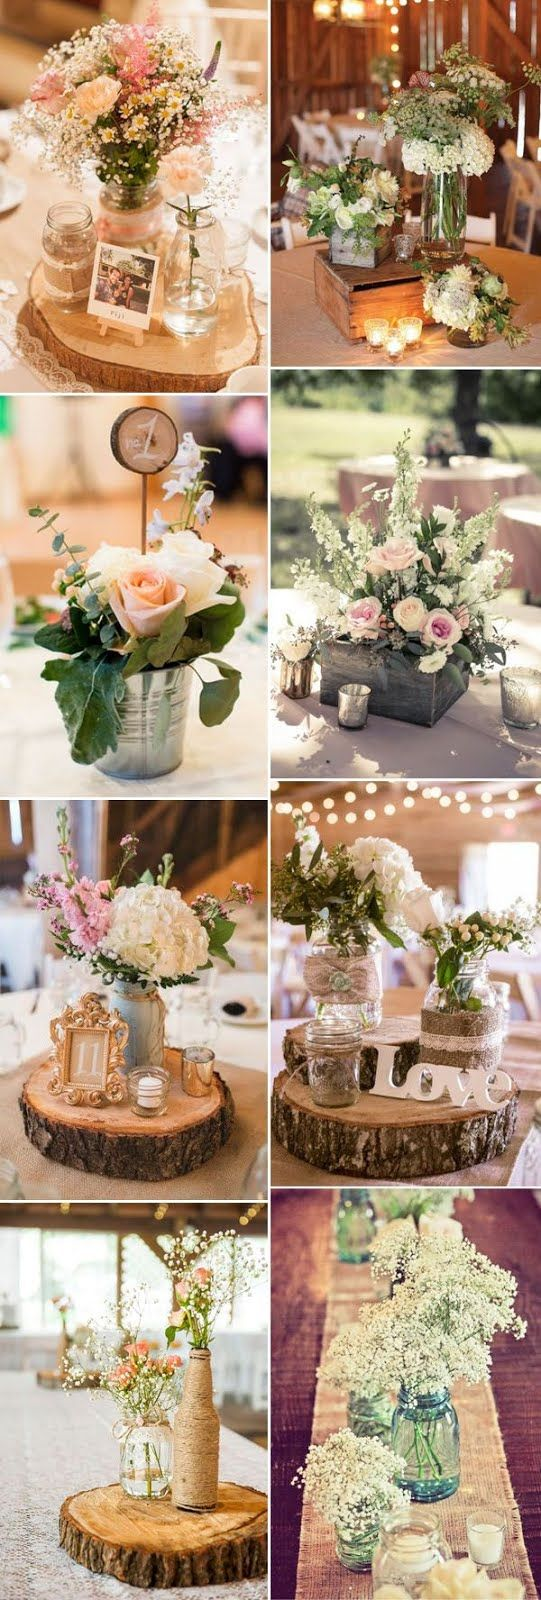 Centerpieces Set The Tone For An Entire Wedding Event For